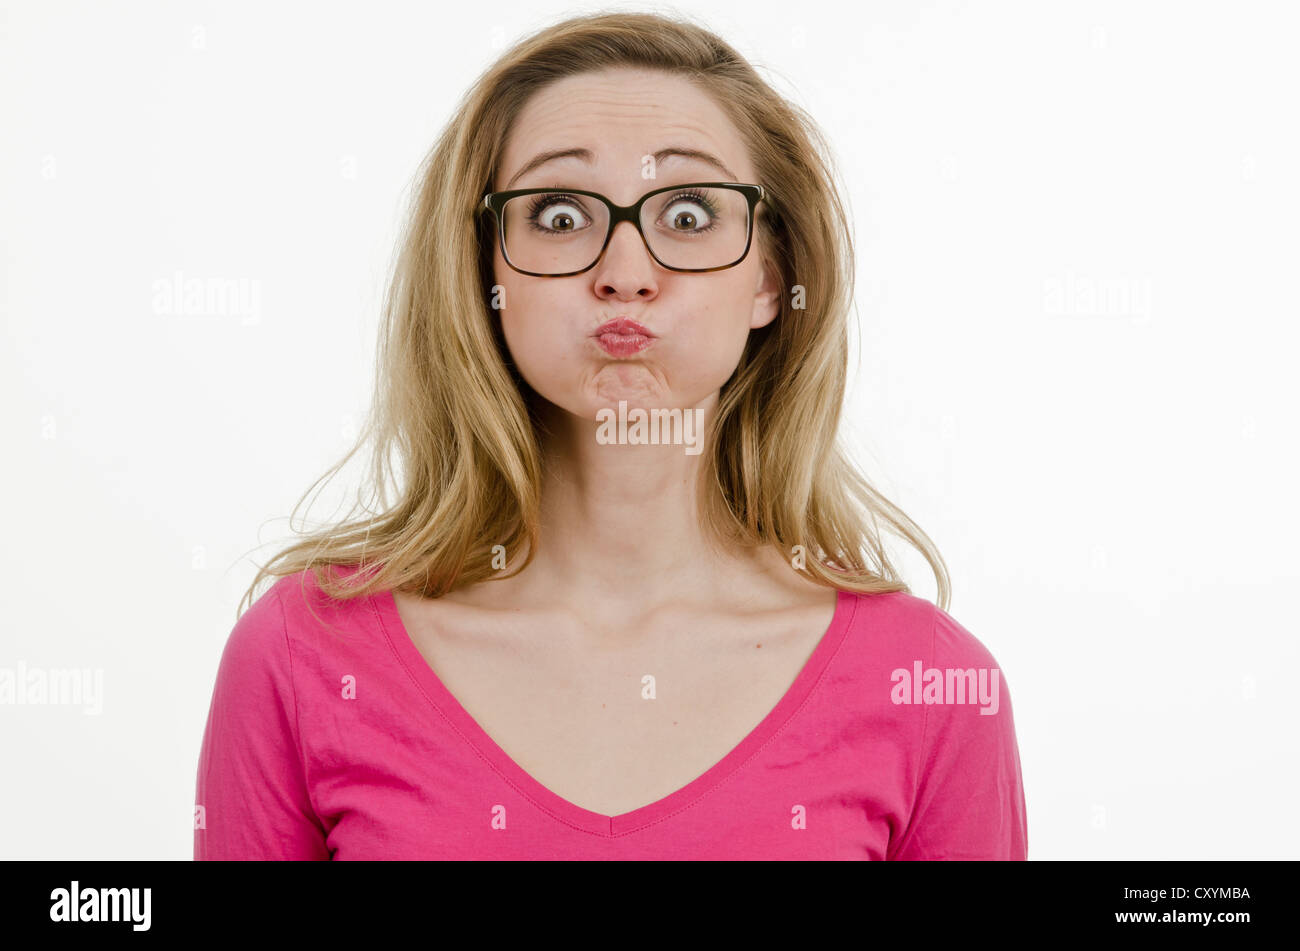 Young woman, 25, wearing large glasses, with puffed cheeks and her eyes wide open - Stock Image